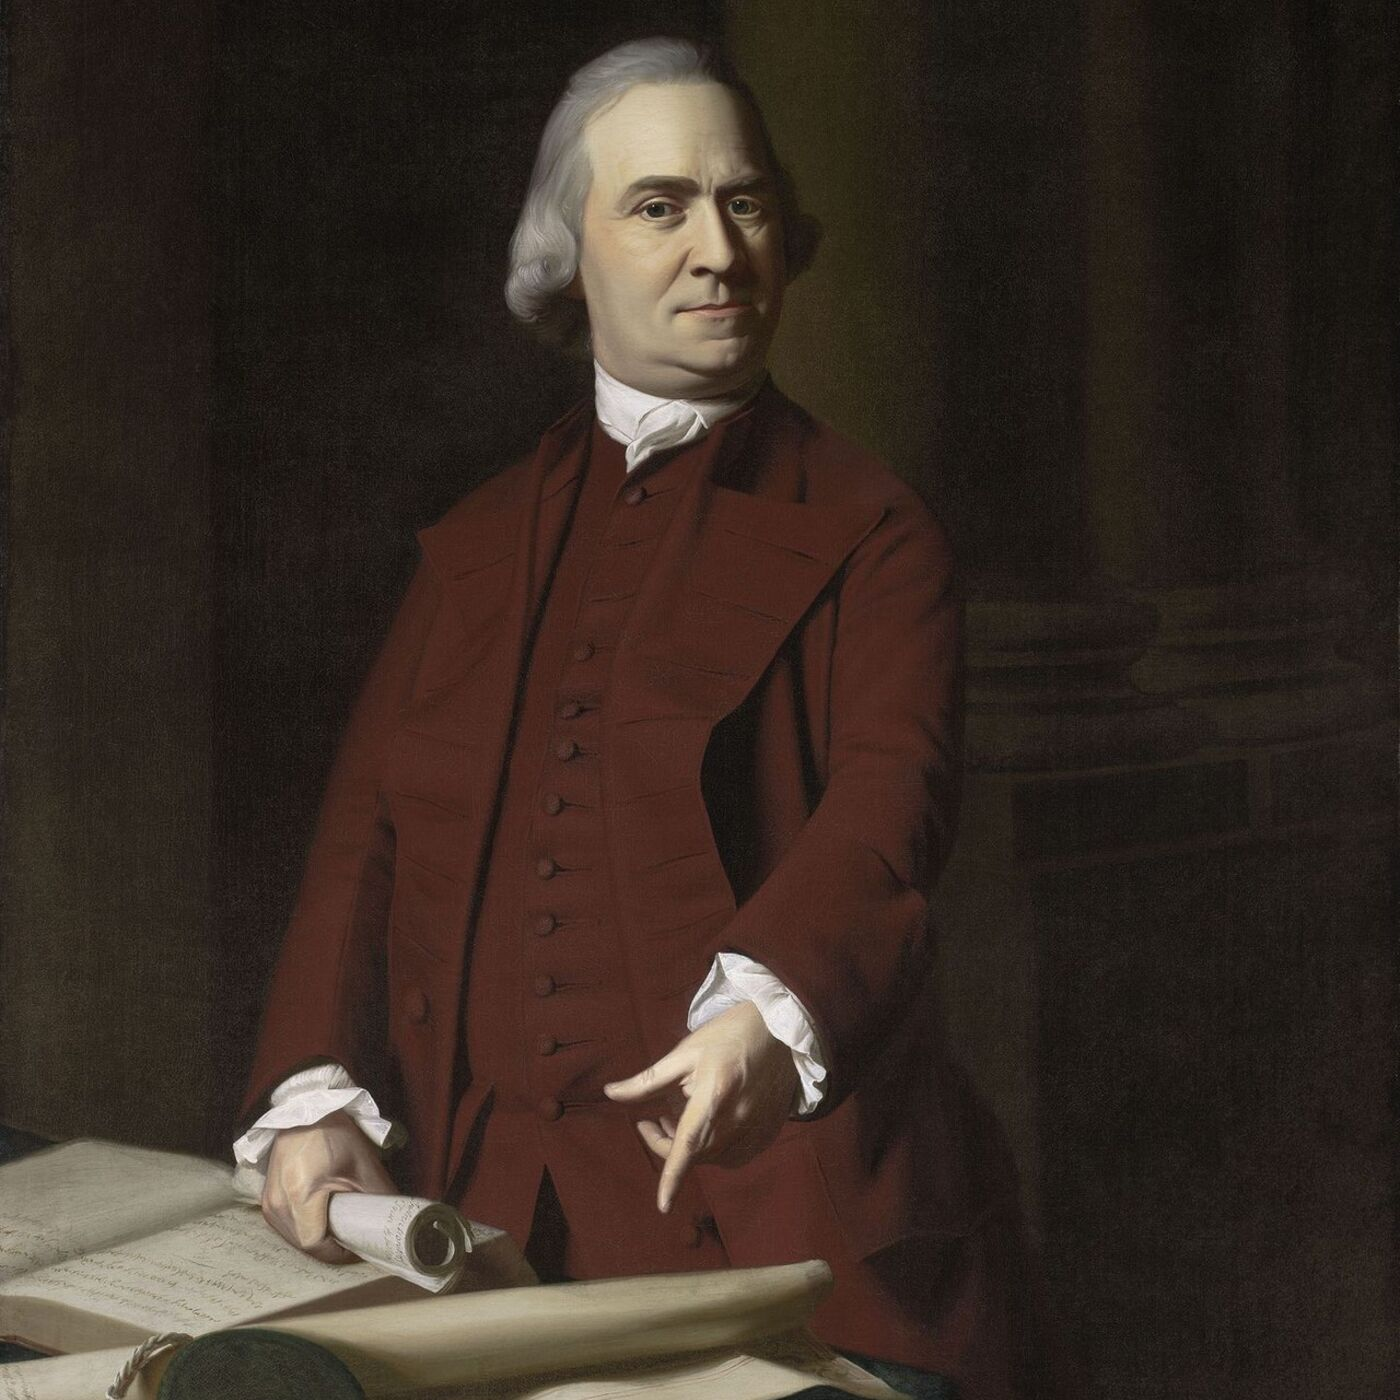 Episode 59: Samuel Adams - An American Brew of Oratory and Republicanism